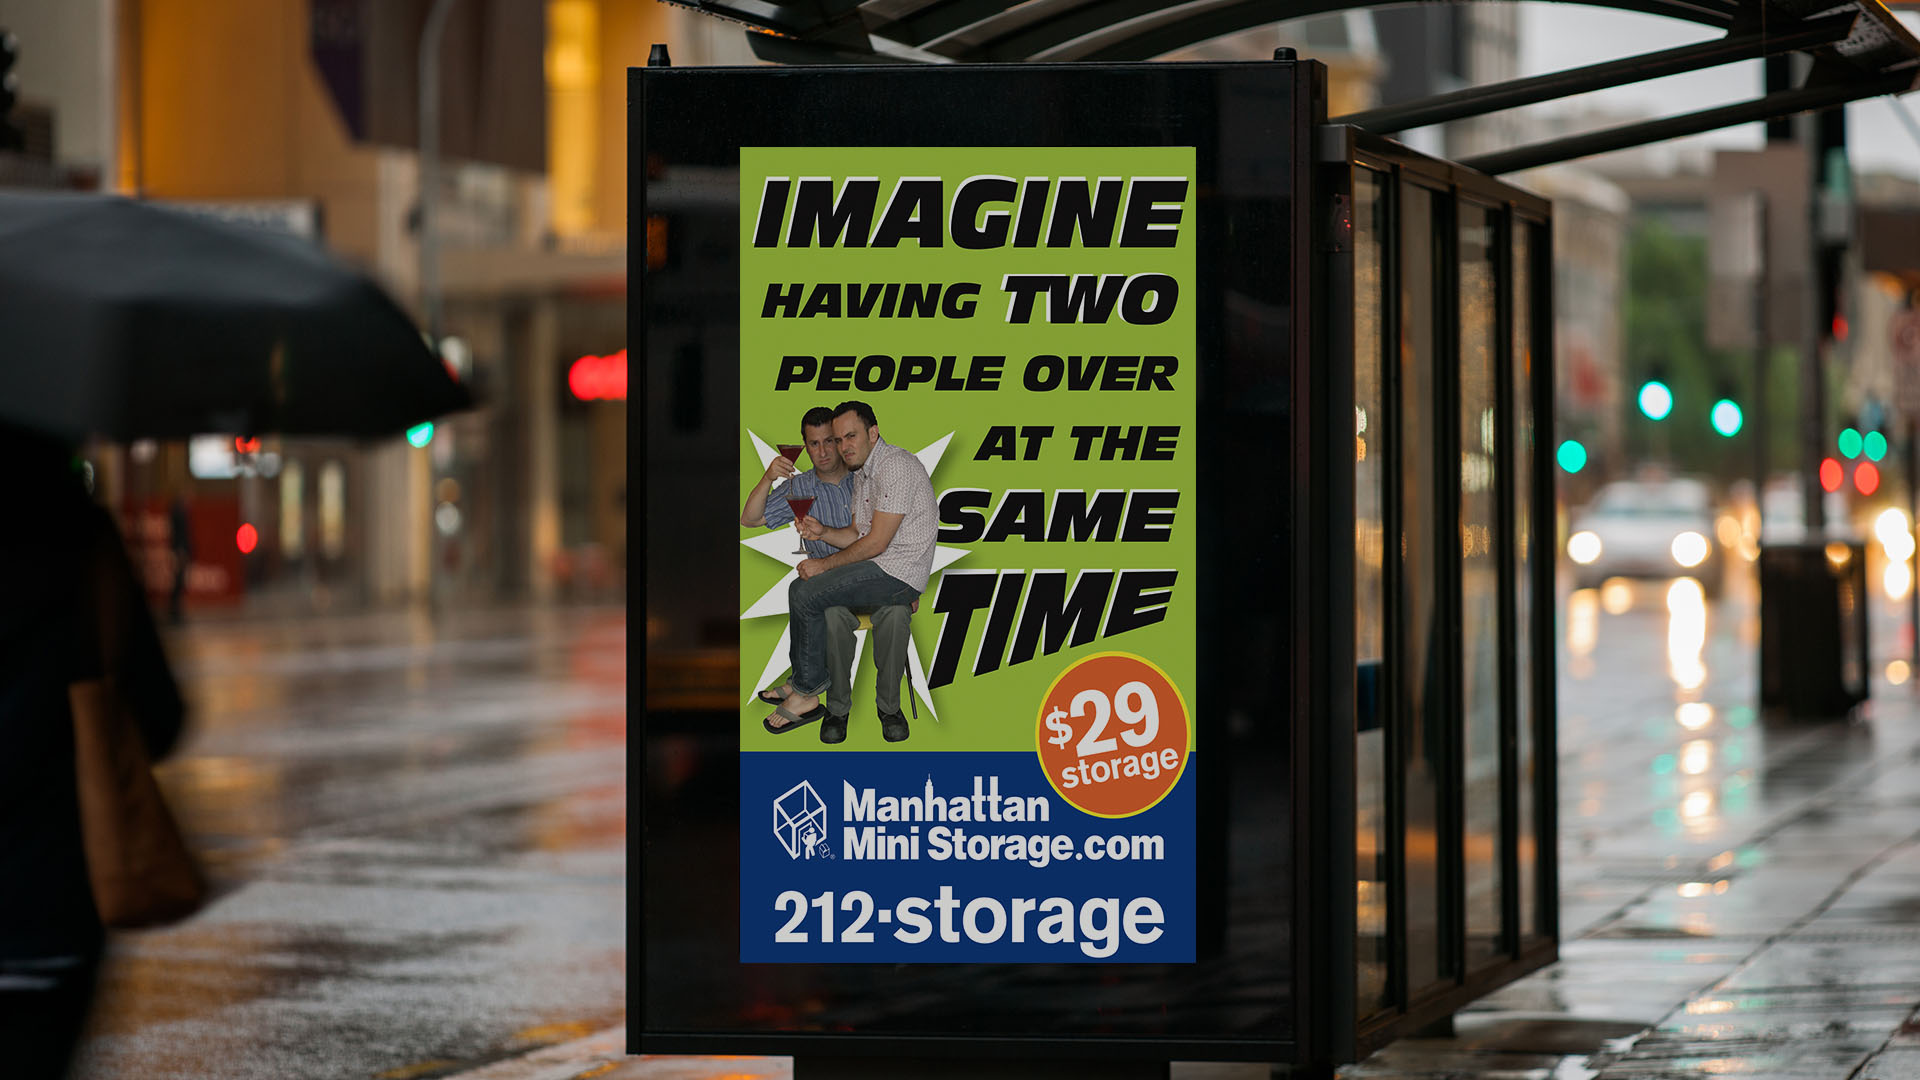 Manhattan Mini Storage – Two People